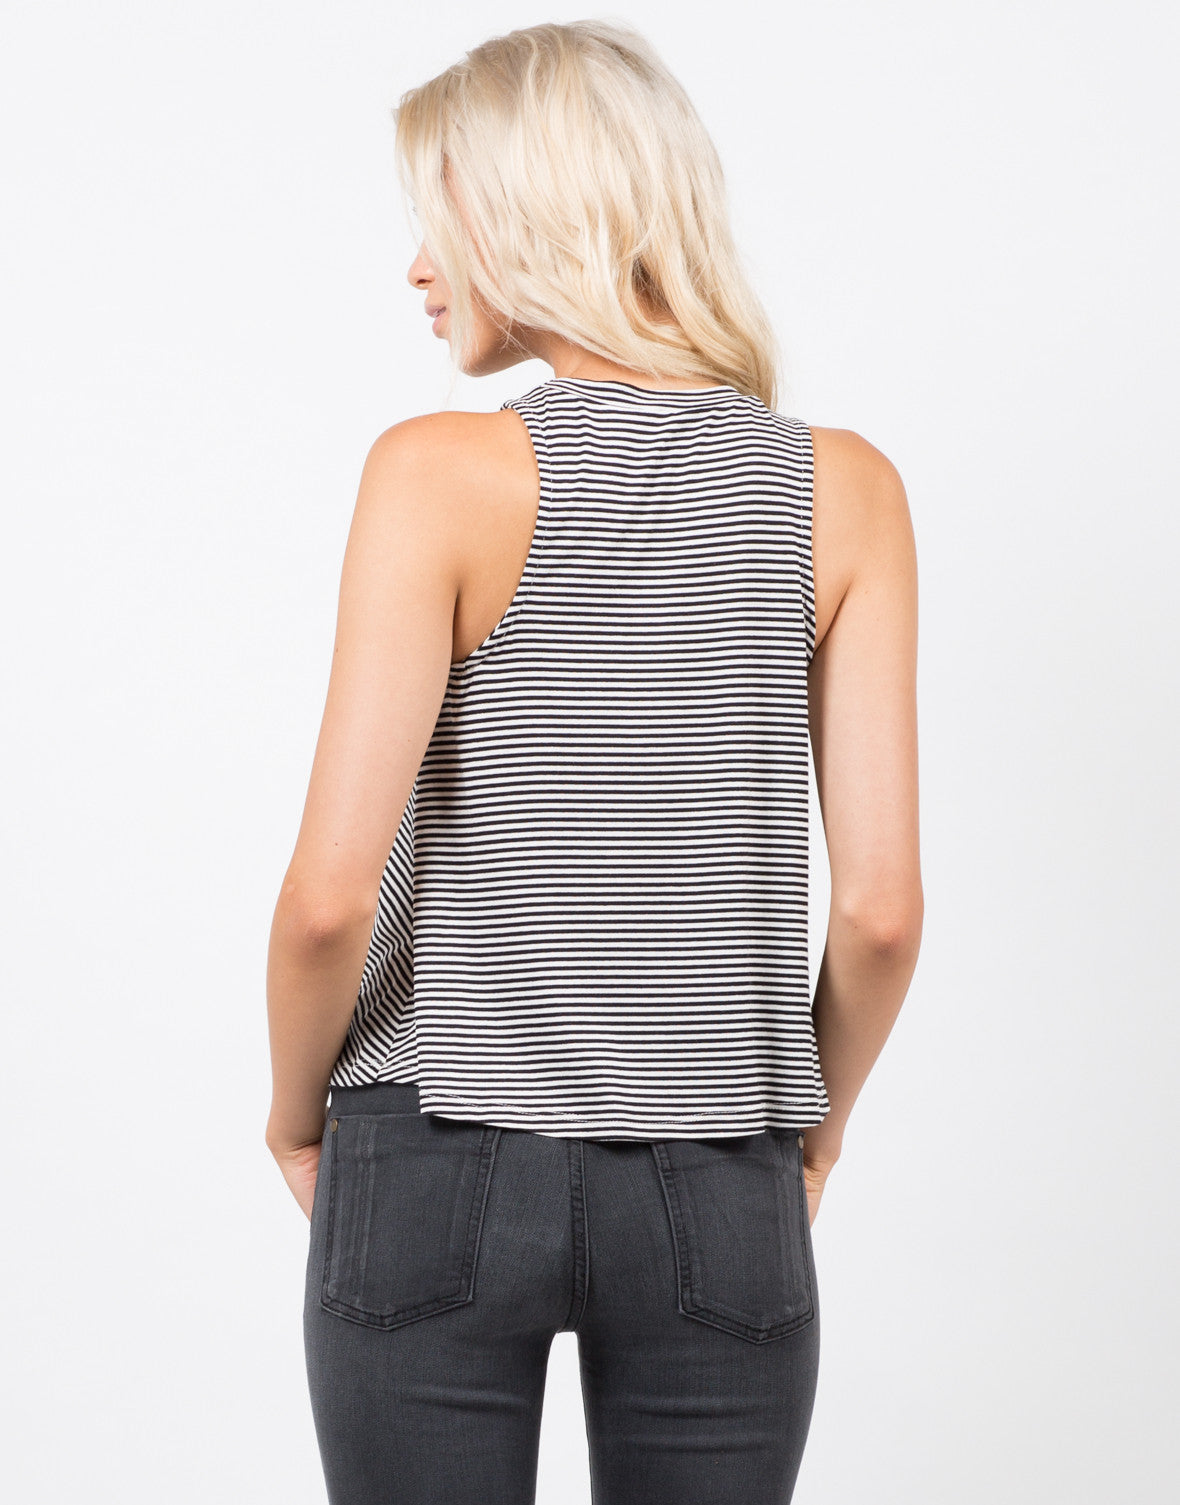 Back View of Knit Striped Sleeveless Tank